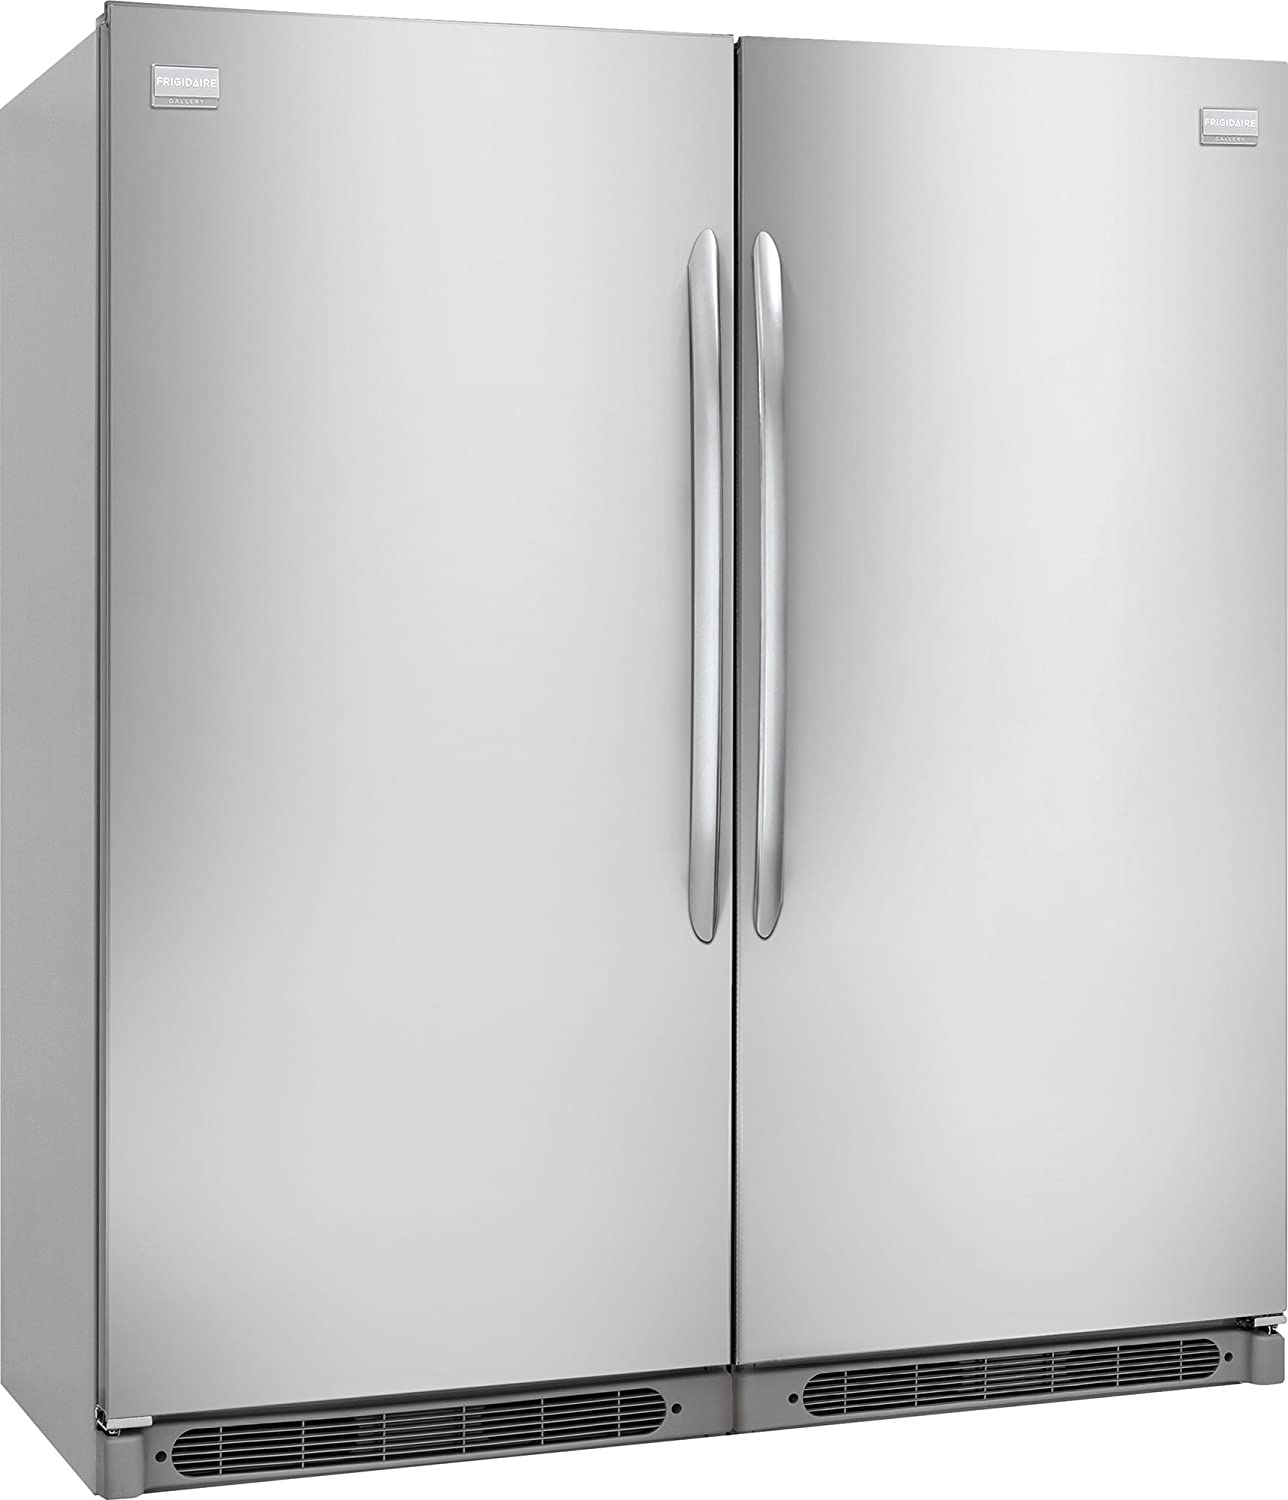 refrigerators change cu steel product click black door gallery ft image appliances stainless frigidaire refrigerator kitchen item electrolux french to